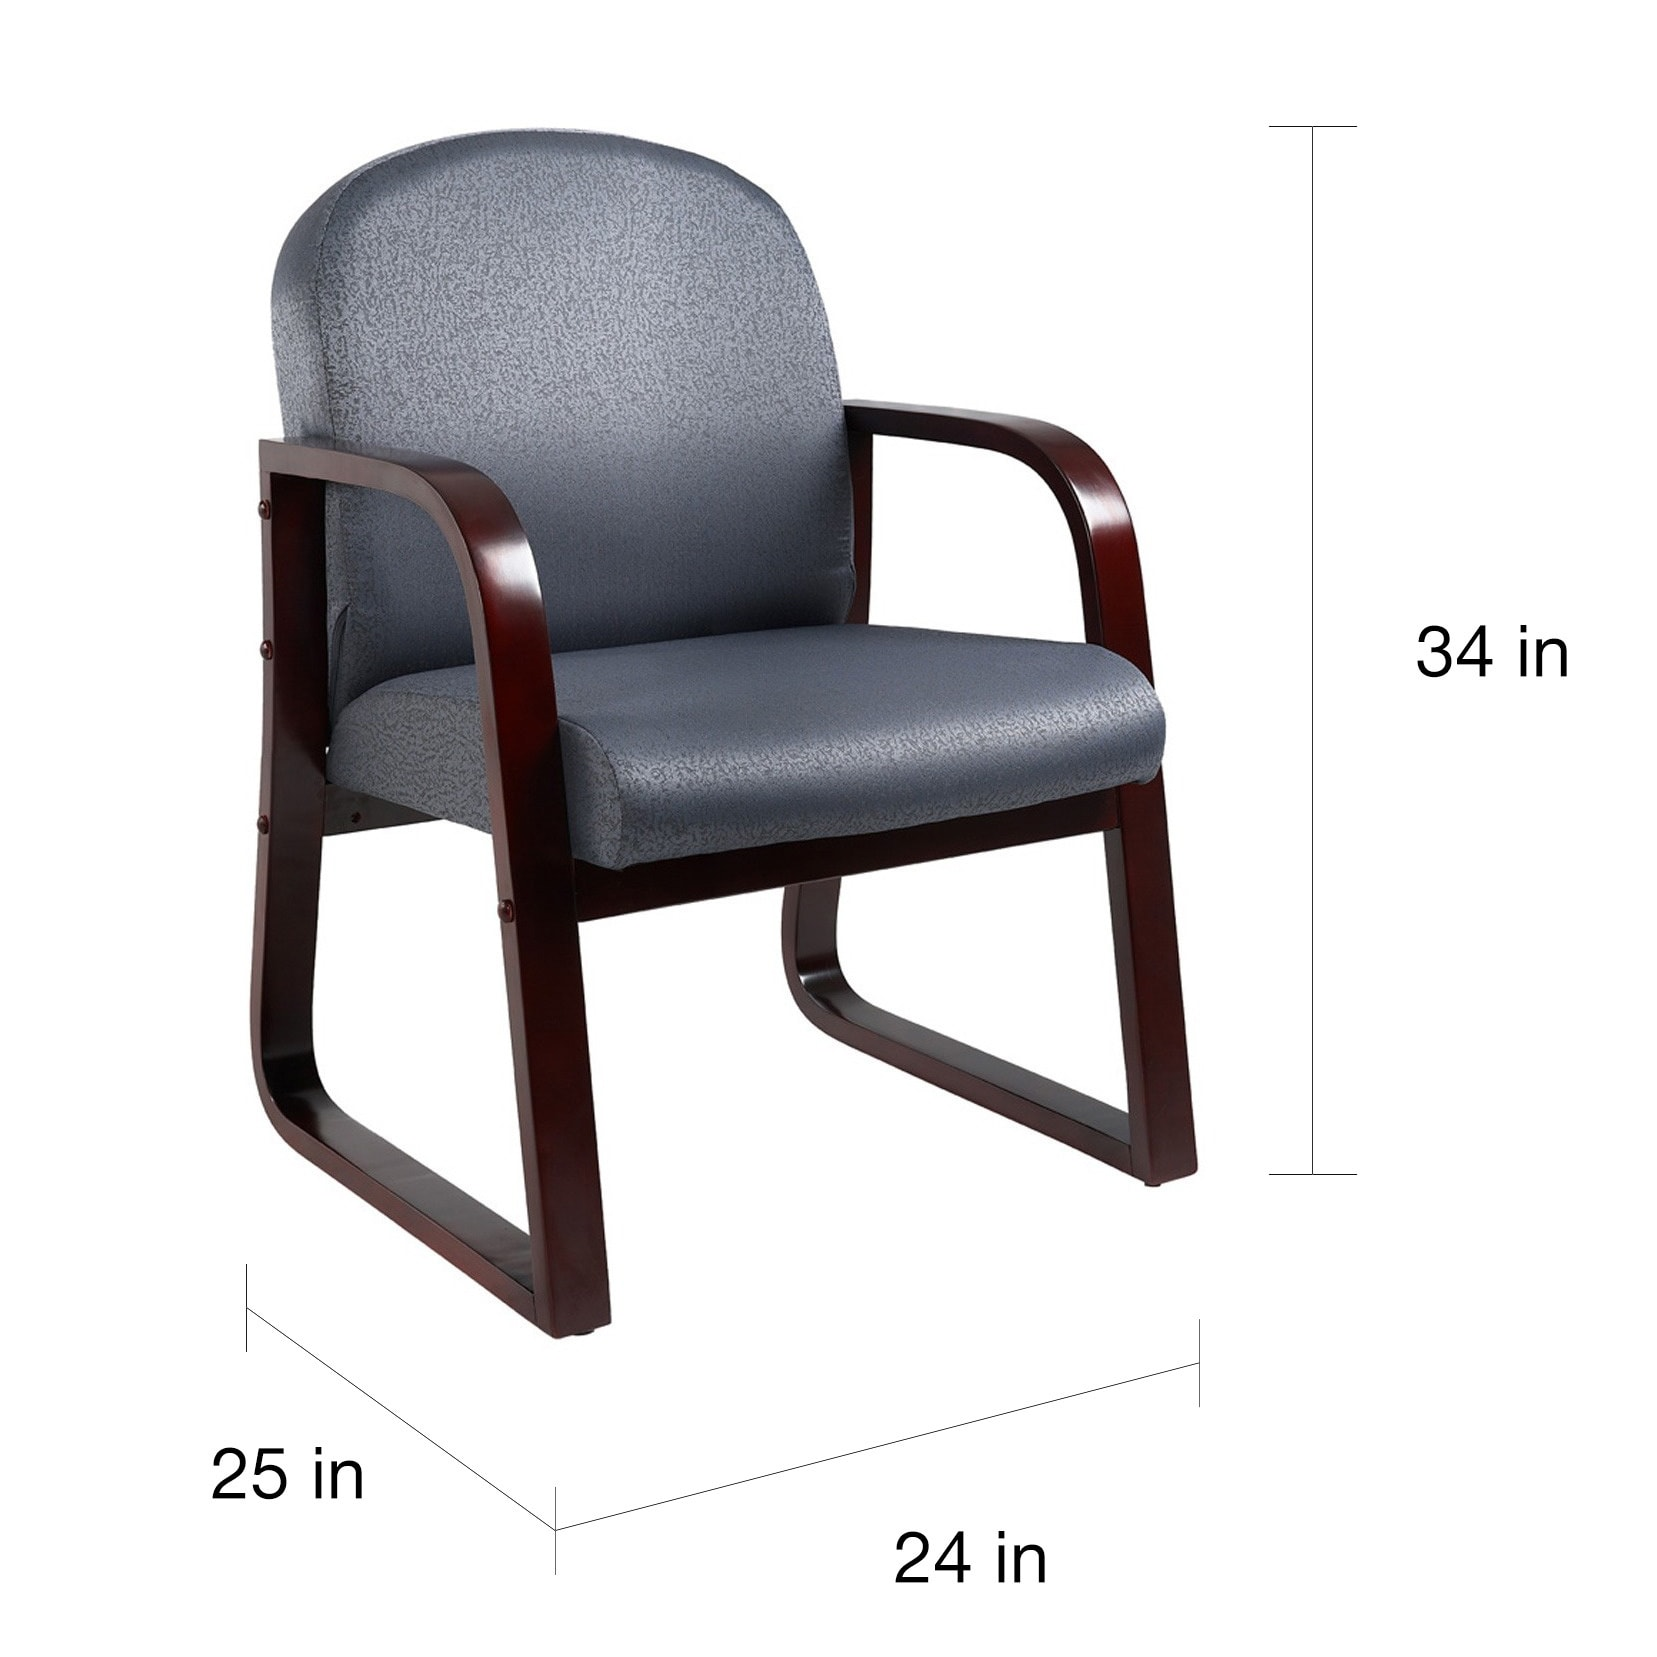 Lovely Boss Sled Base Mahogany Wood Reception Chair - Free Shipping Today  UR23